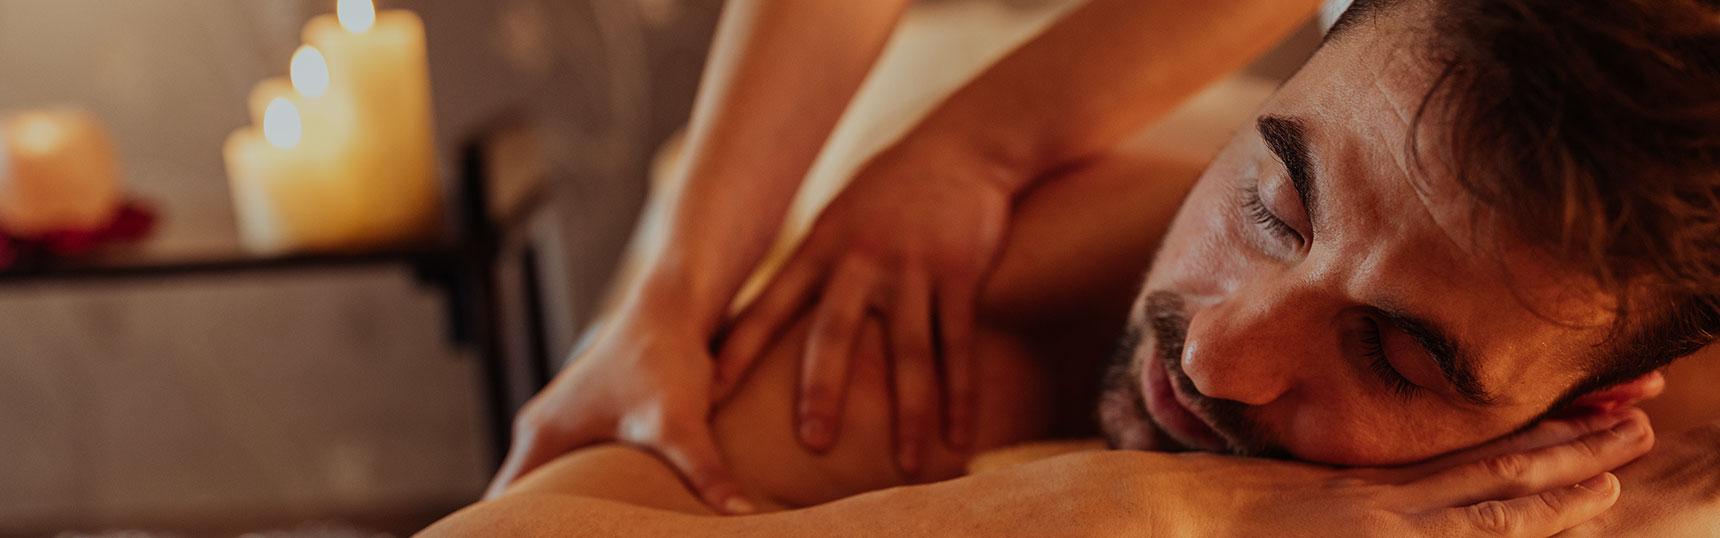 sydney-town-hall-massage